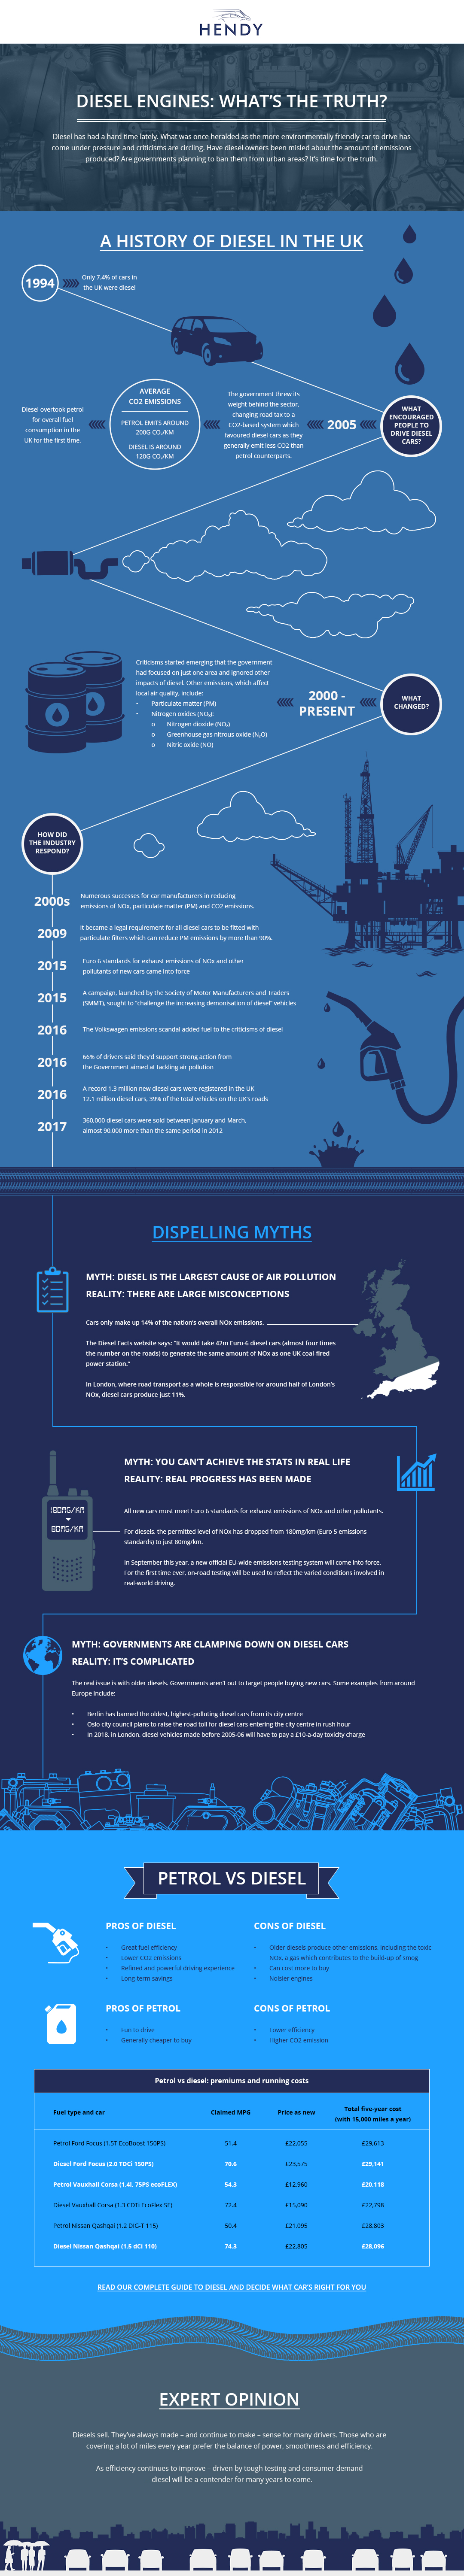 truth about diesel infographic